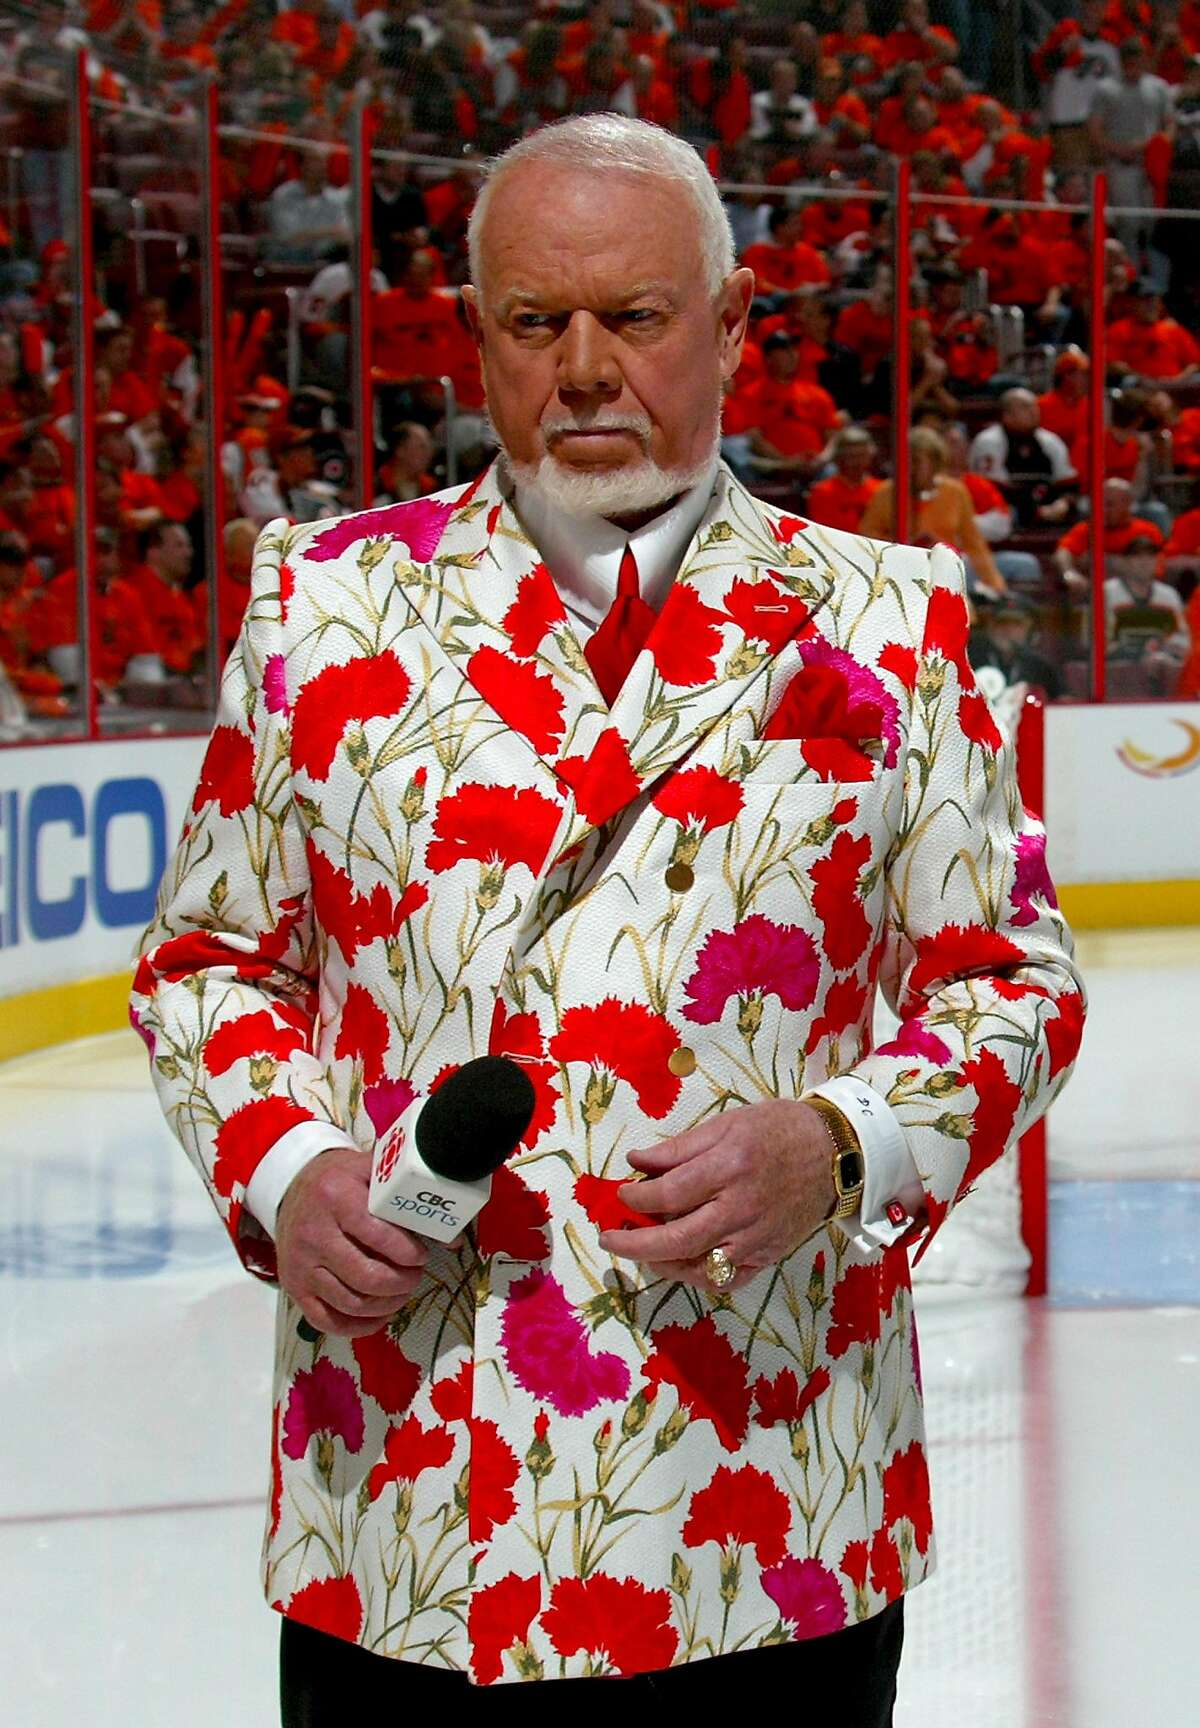 PITTSBURGH - MAY 13: Hockey commentator Don Cherry stands on the ice before the start of game three of the Eastern Conference Finals of the 2008 NHL Stanley Cup Playoffs between the Pittsburgh Penguins and the Philadelphia Flyers at Wachovia Center on May 13, 2008 in Philadelphia, Pennsylvania.